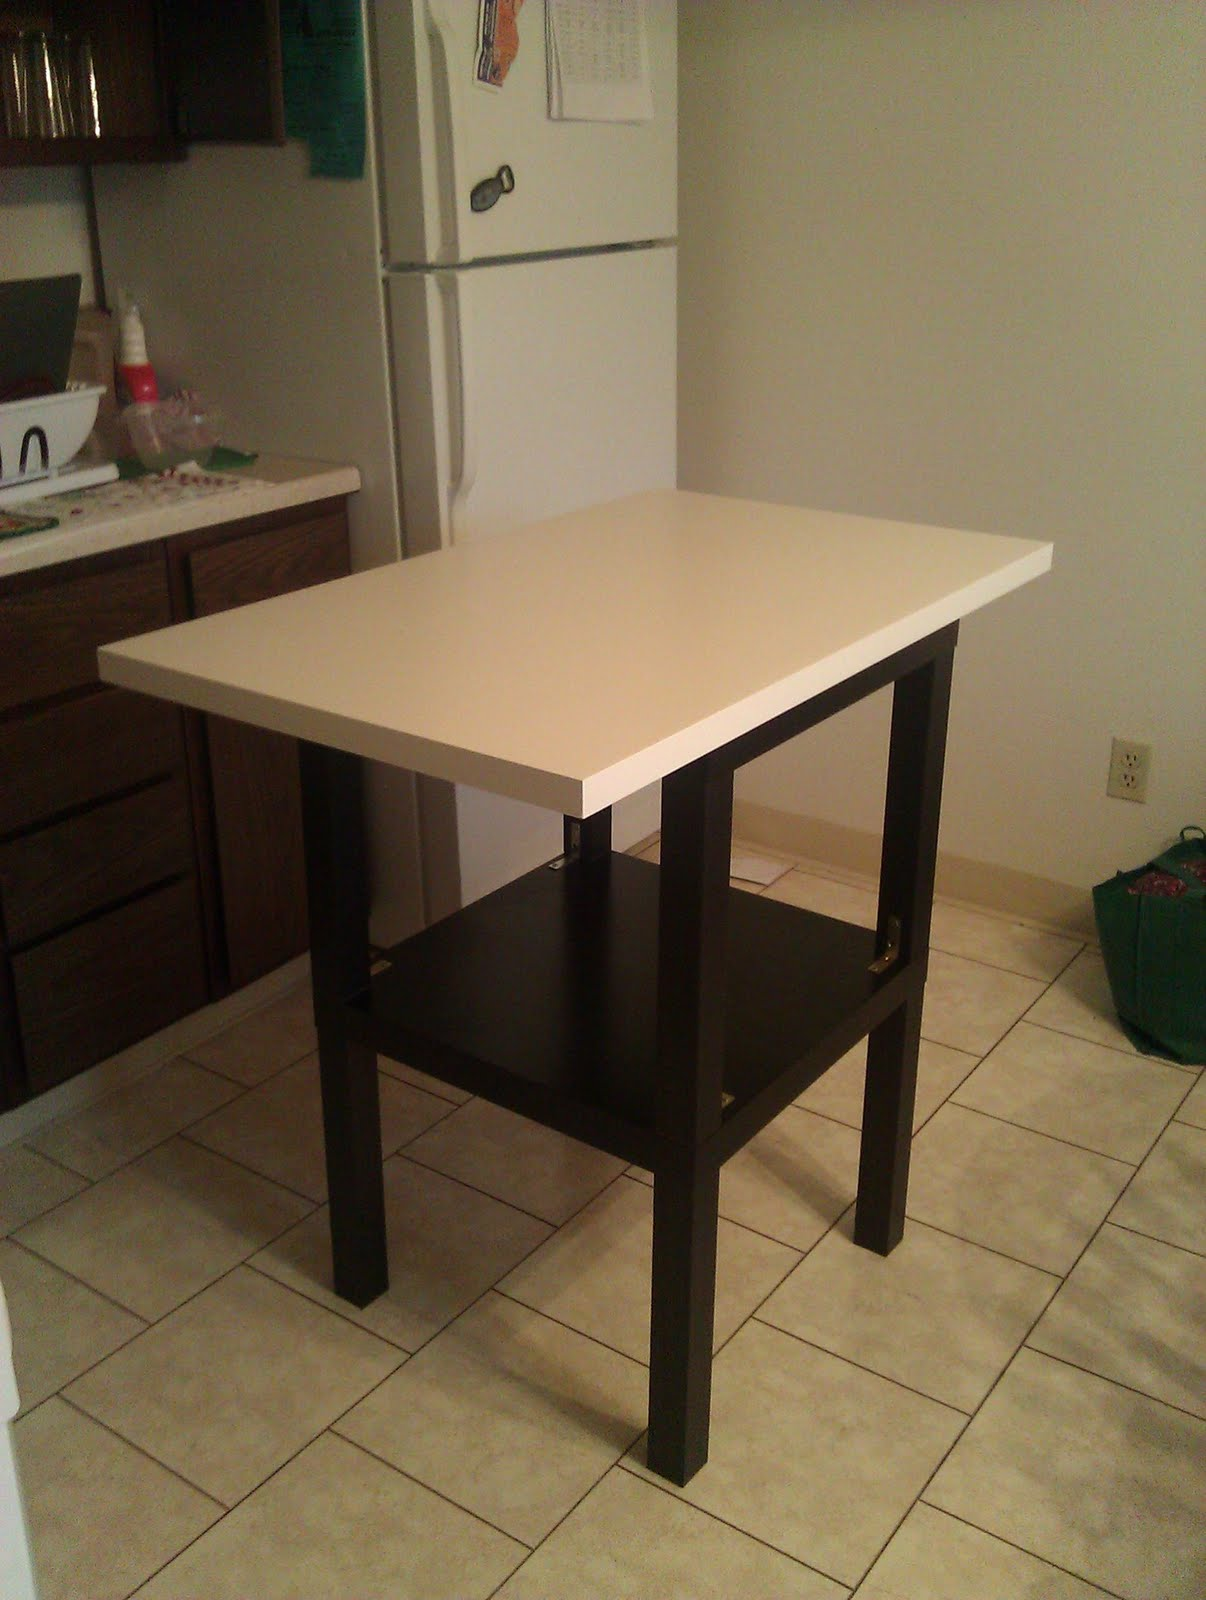 cheap lack kitchen island ikea hackers ikea hackers inexpensive kitchen islands kitchens inexpensive kitchen